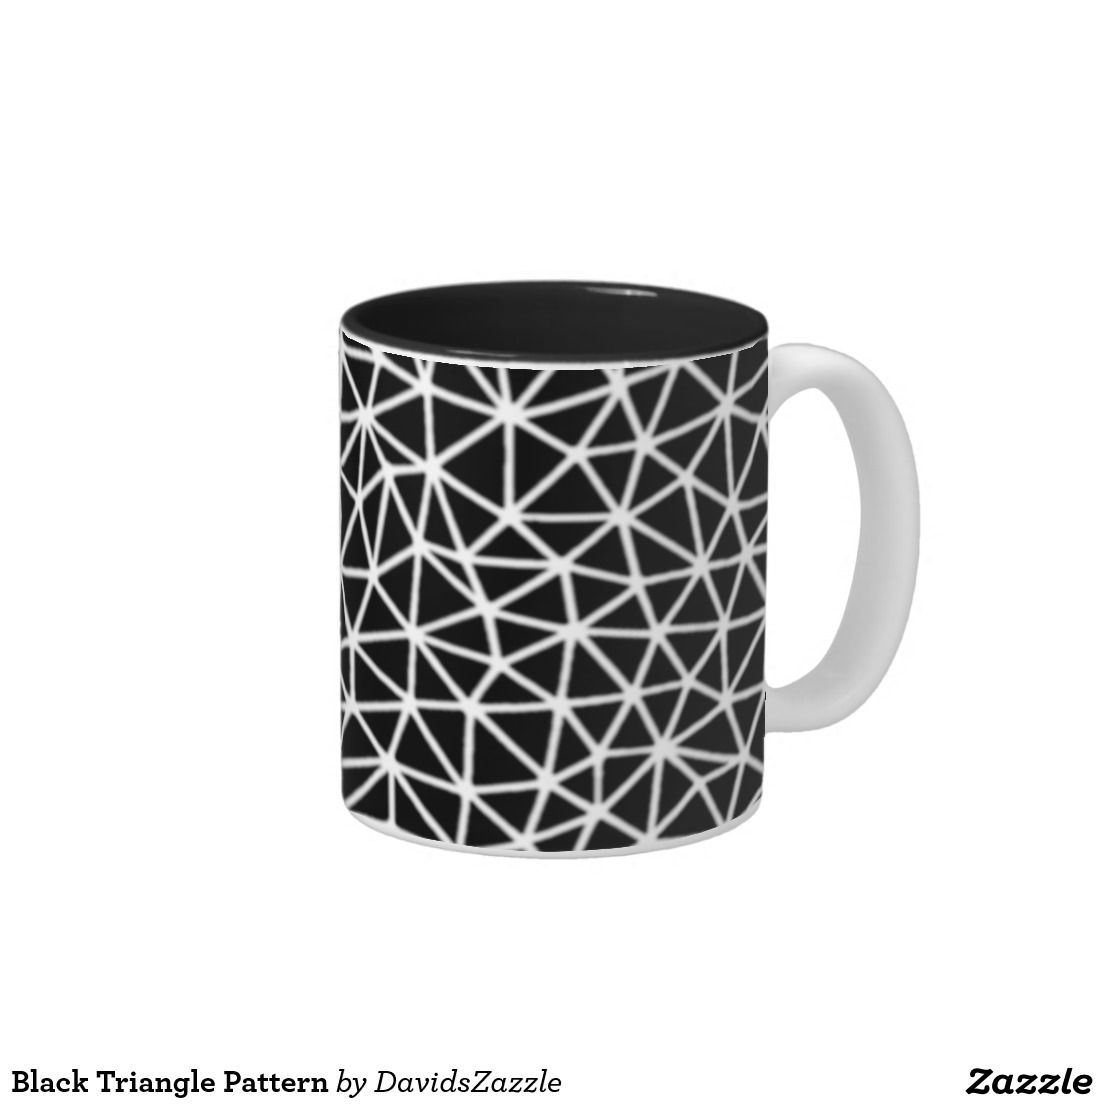 Black Triangle Pattern Coffee Mug Check Out The Site For For Options Triangle Geometric Home Decor Black White Mugs Geometric Wedding Triangle Pattern